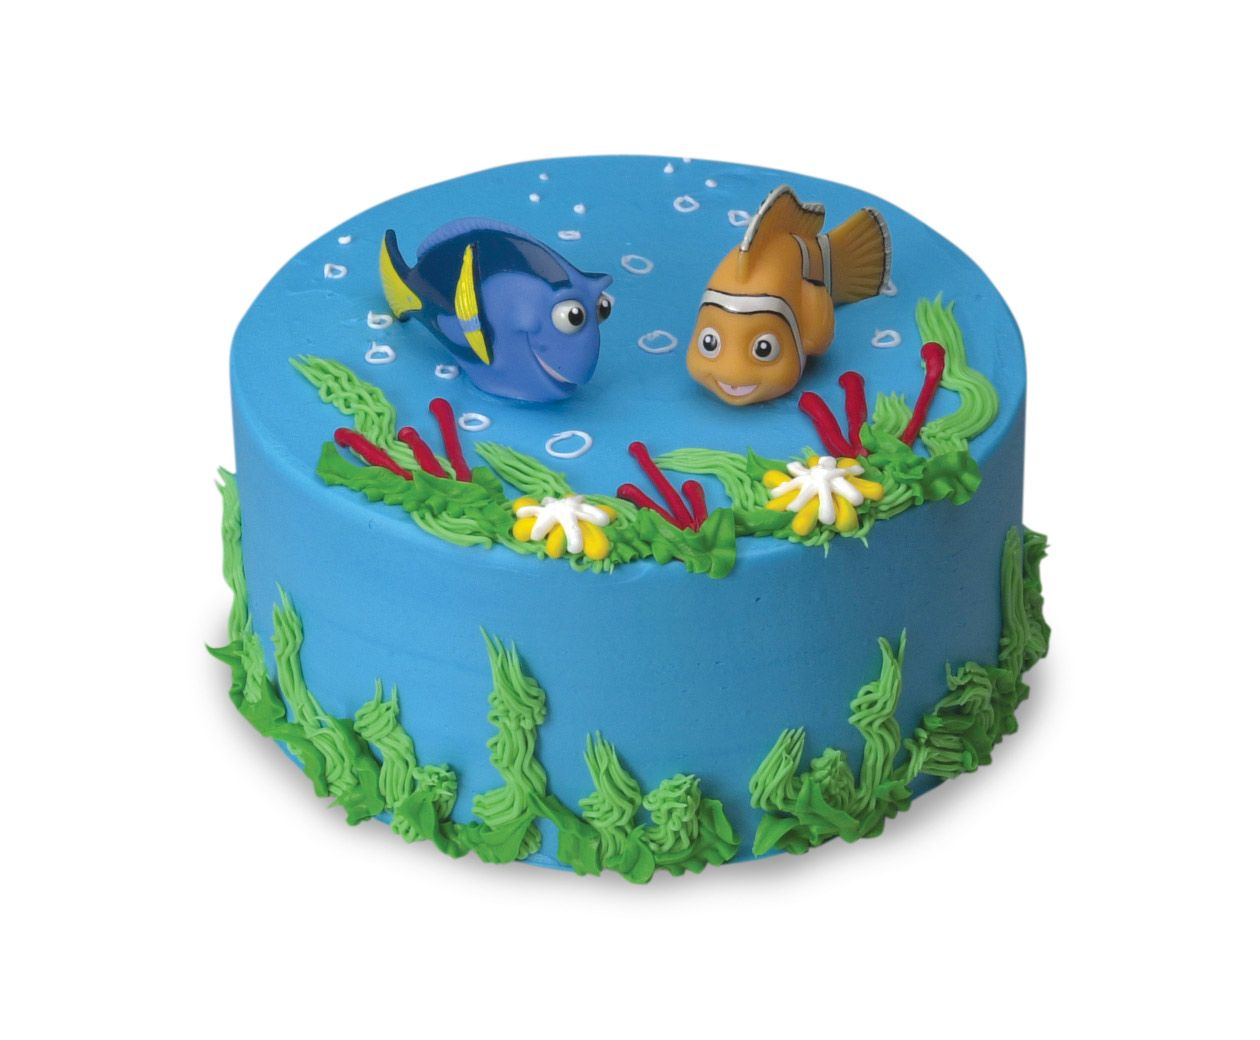 Finding Nemo Ice Cream Cake at Cold Stone Creamery Replace Fish on